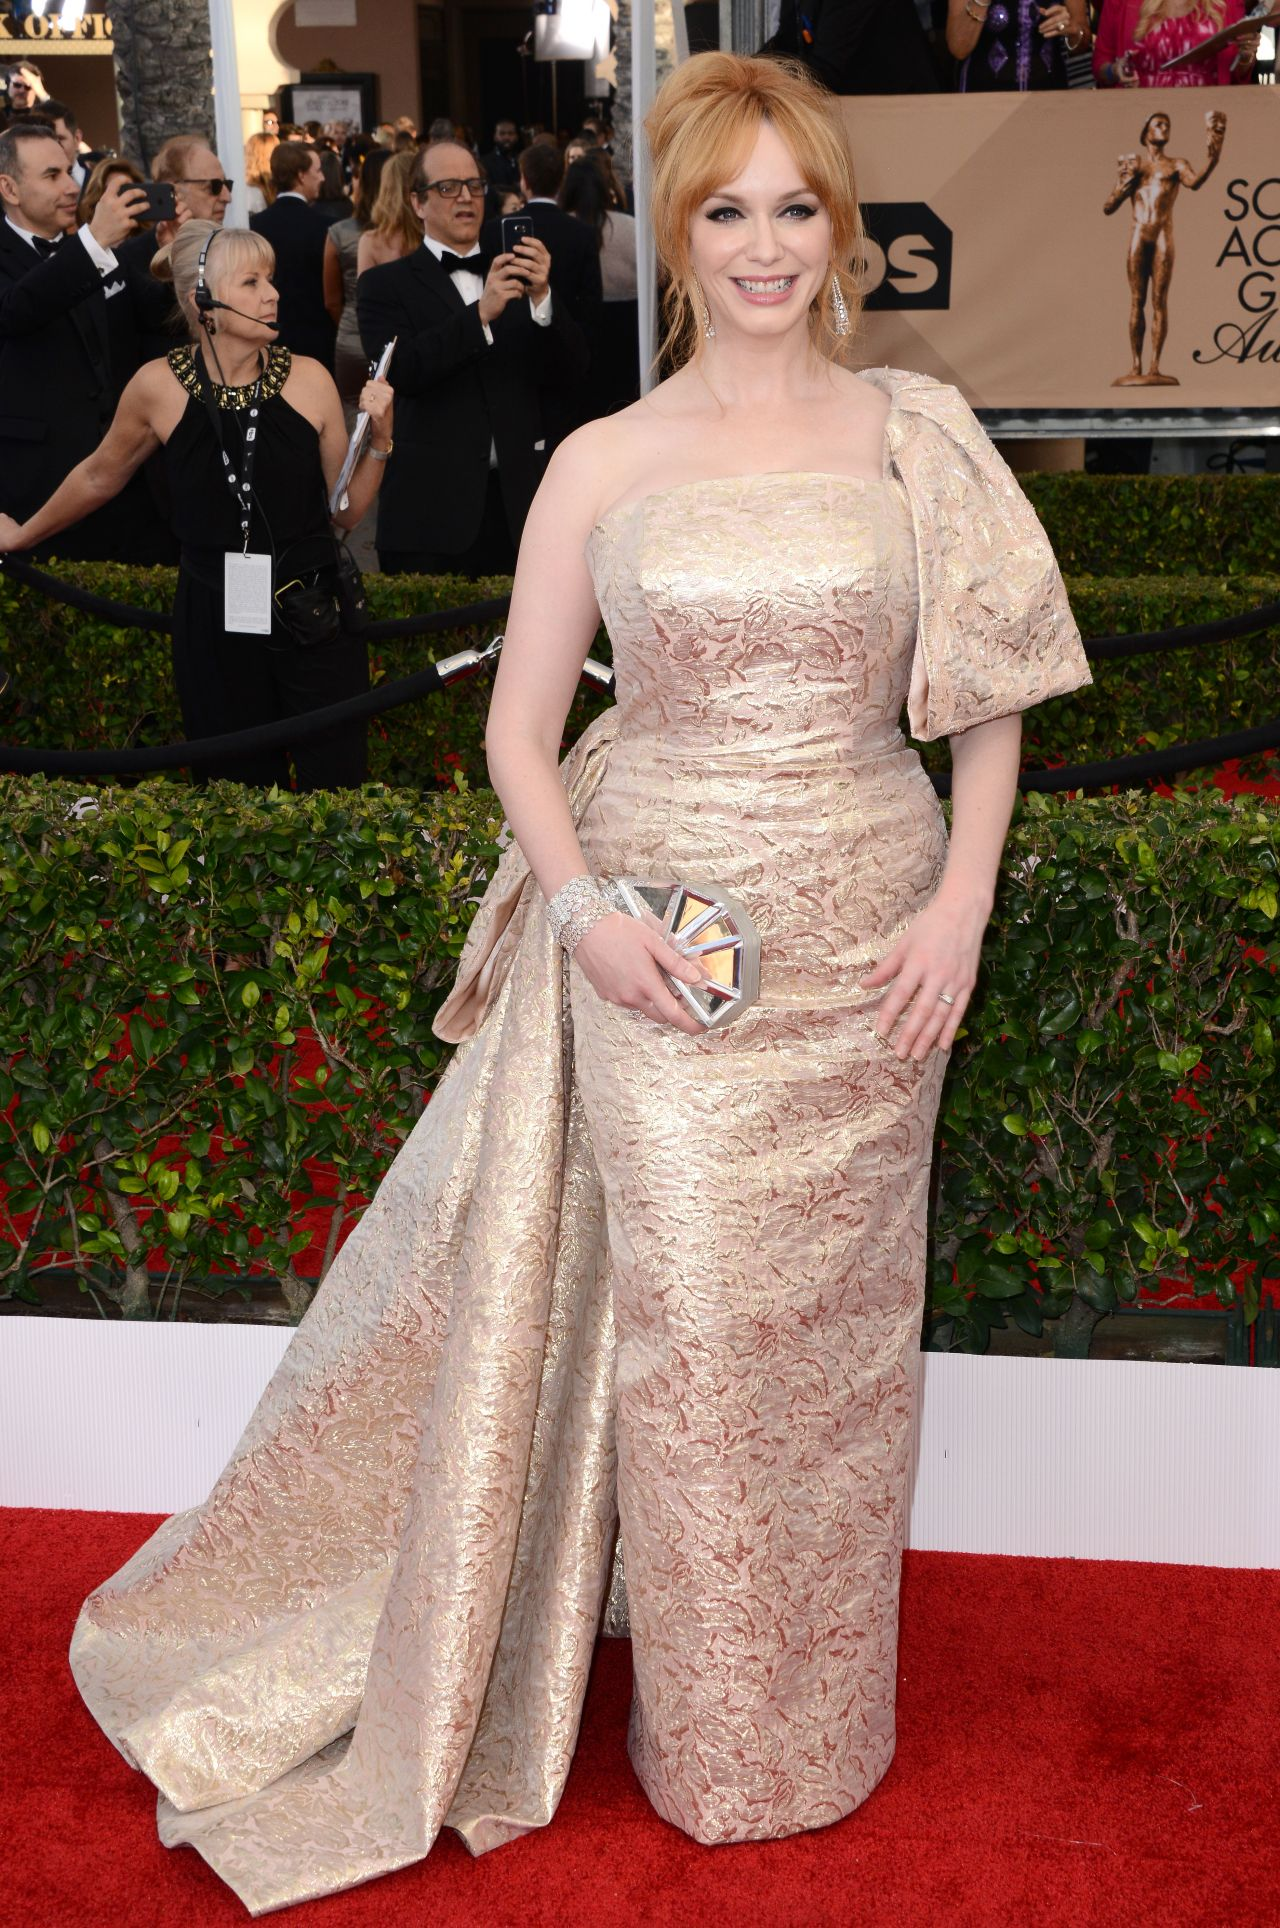 christina-hendricks-sag-awards-2016-at-shrine-auditorium-in-los-angeles-1